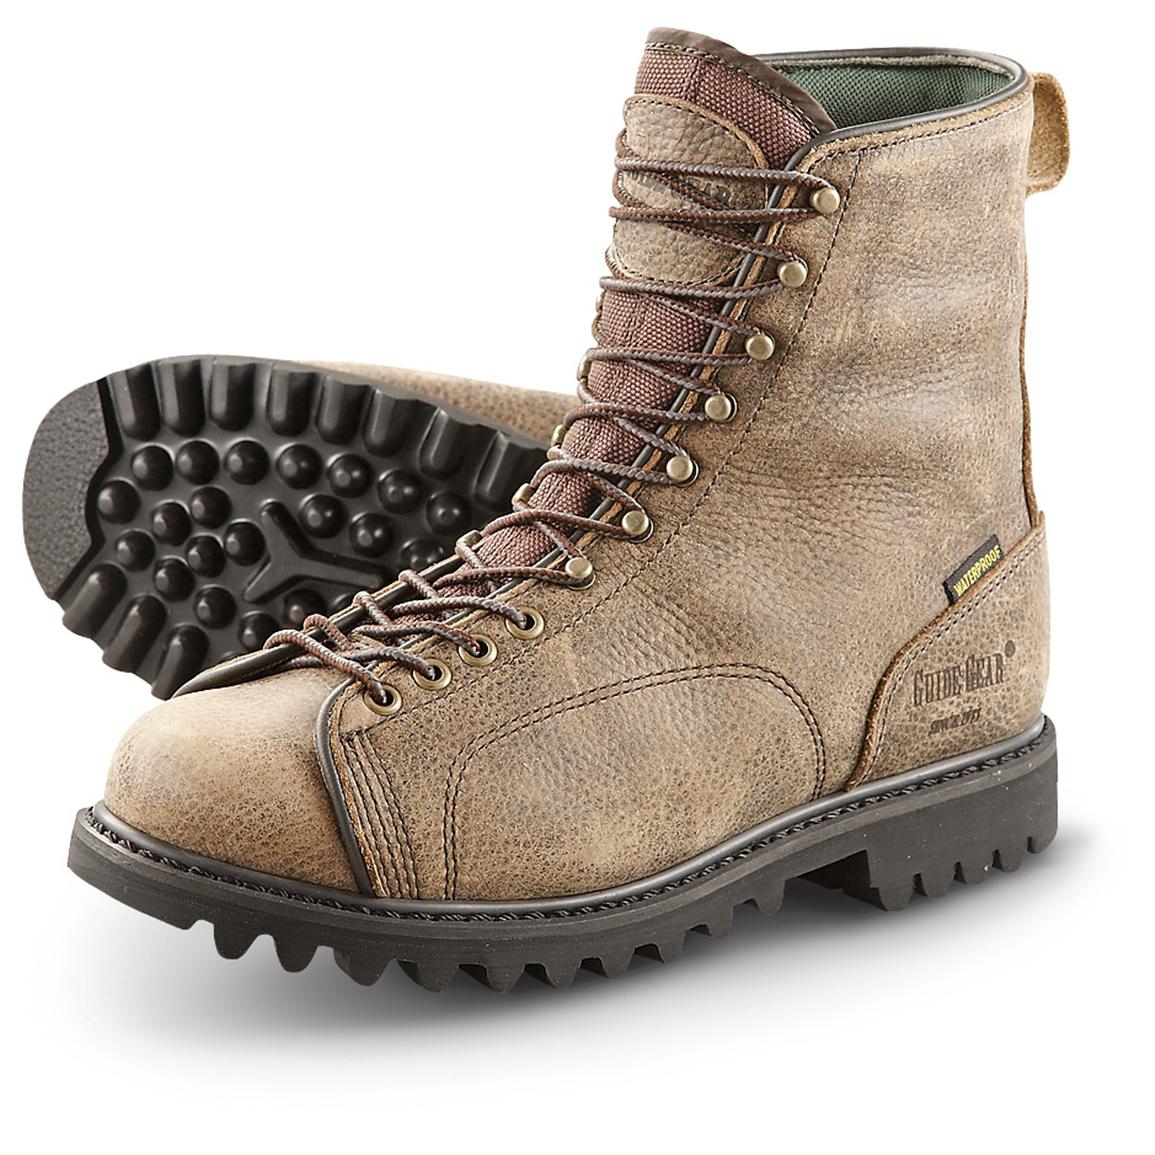 Mens Insulated Boots eeh3OH20